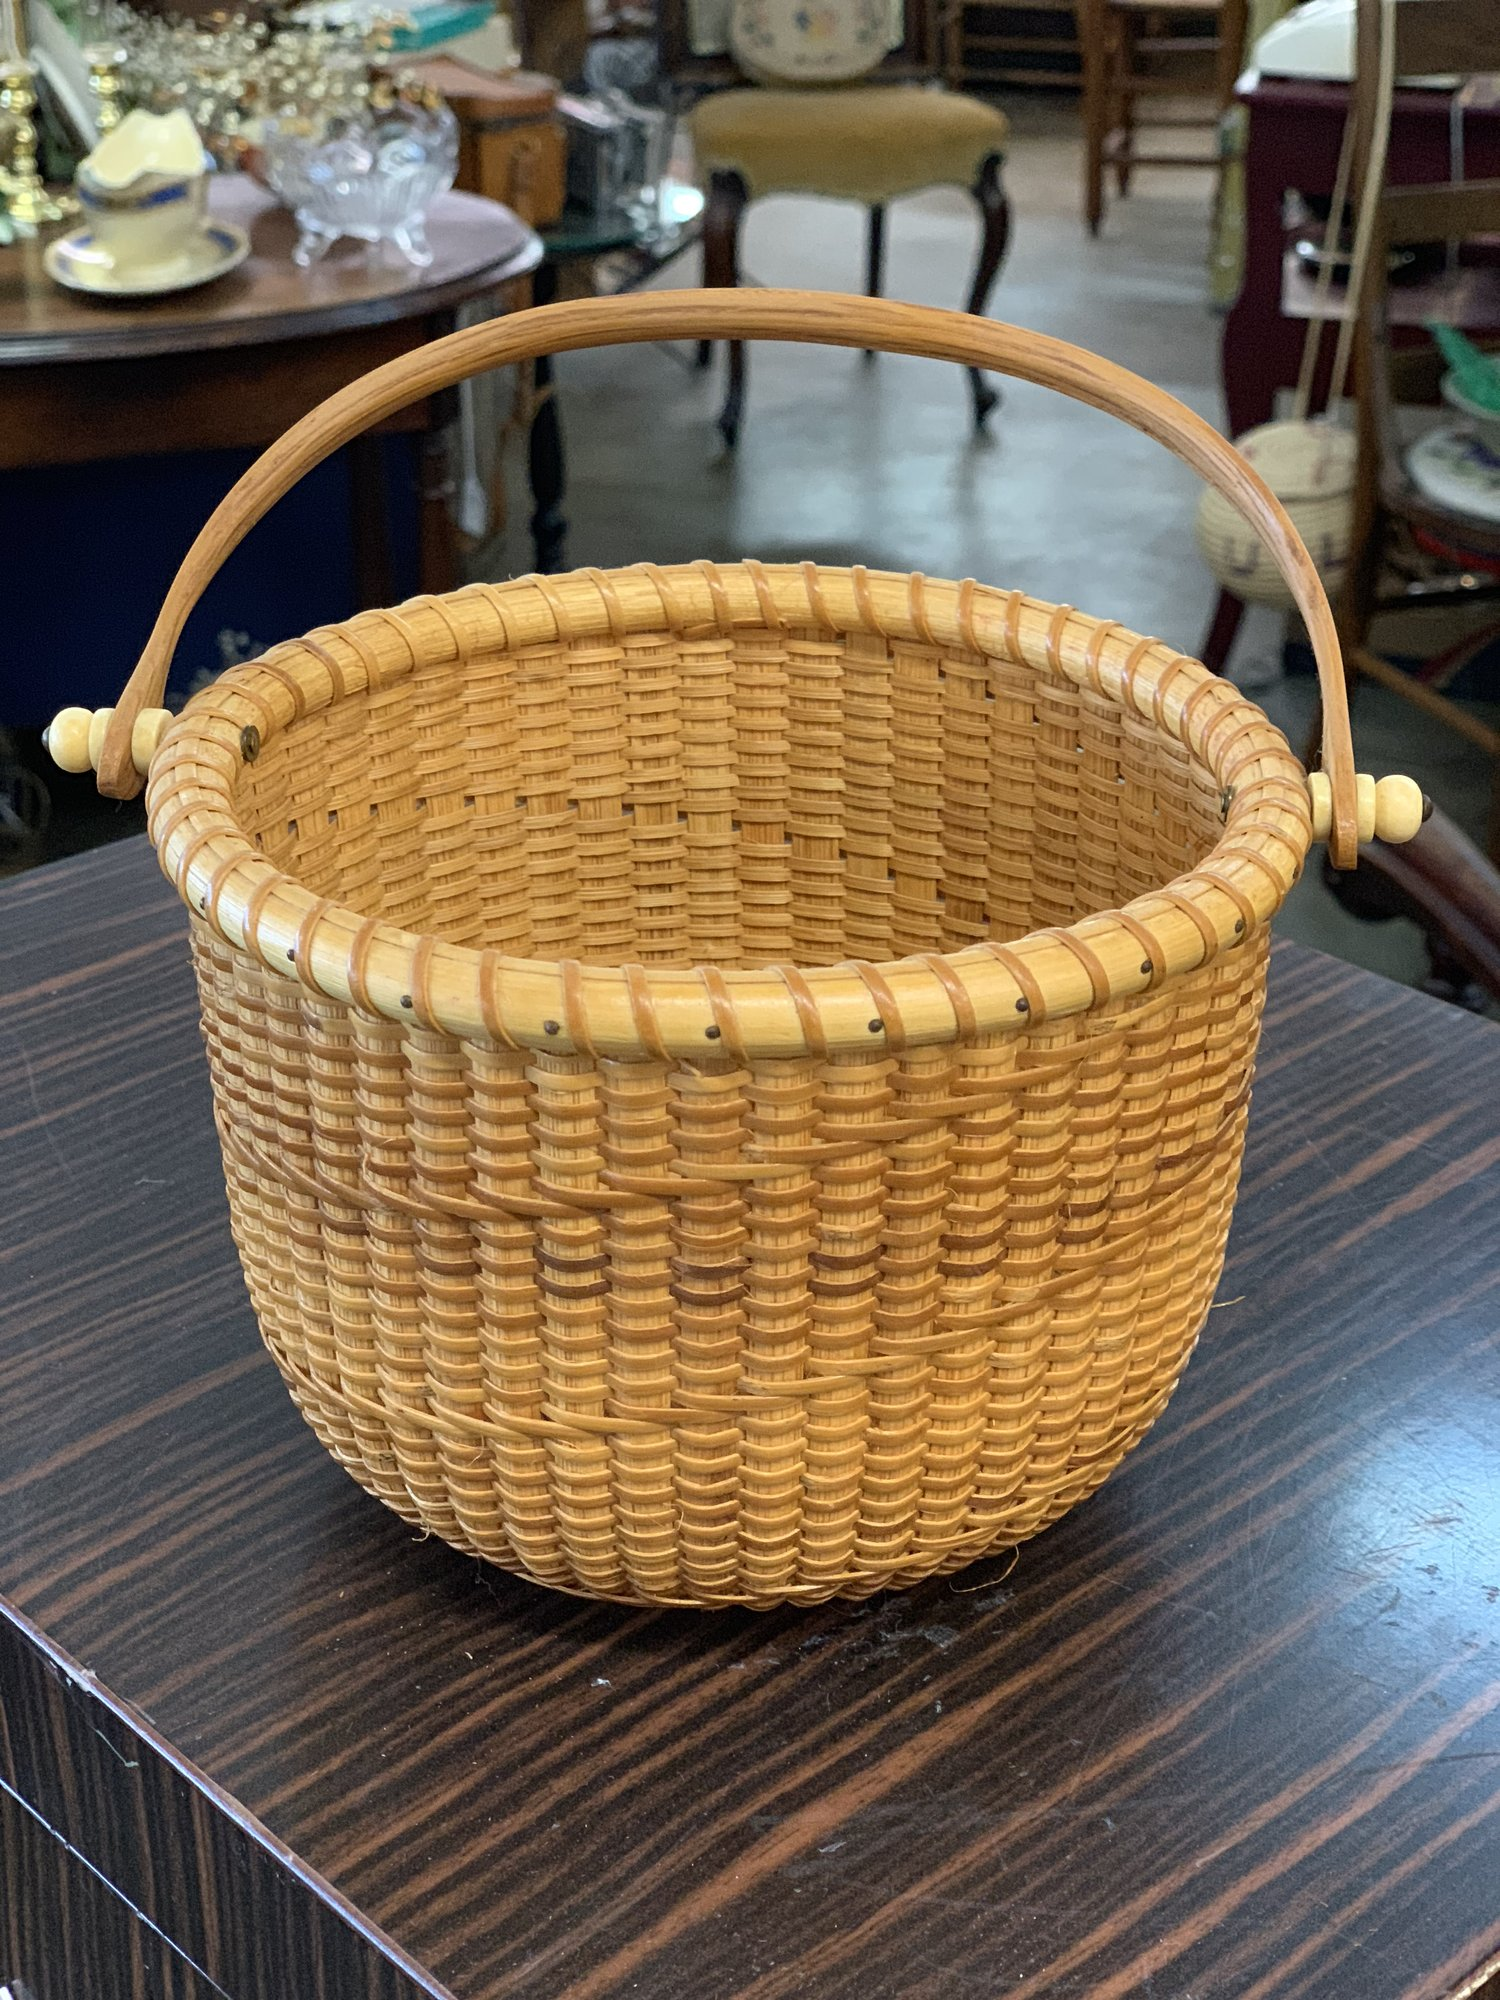 Shaker Style Basket.... Small, tight Weave with a wooden bottom and hardy construction. Great condition